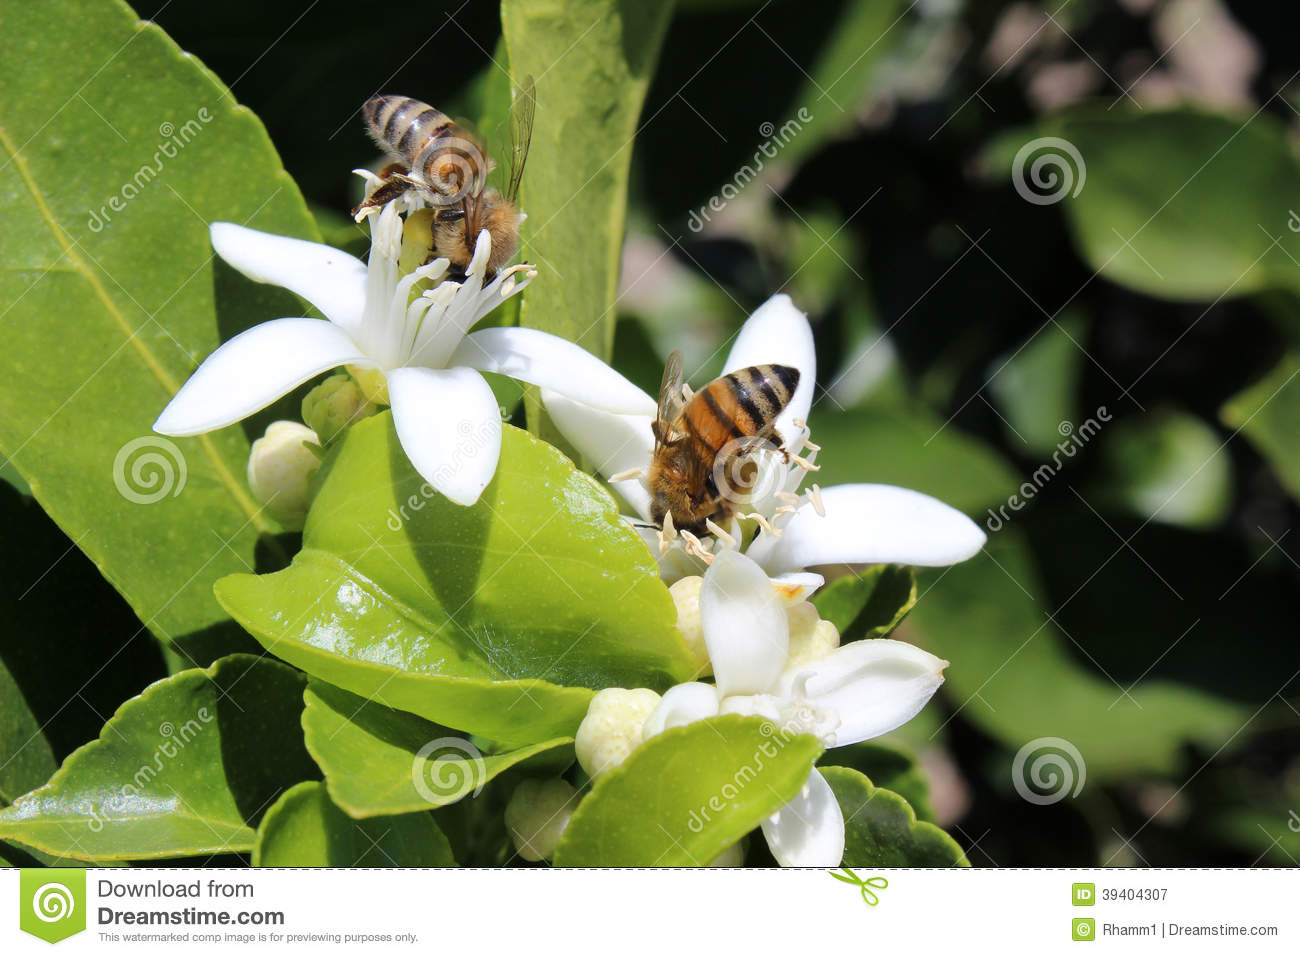 Bees Pollinating Fruit Trees Stock Image - Image: 39404307